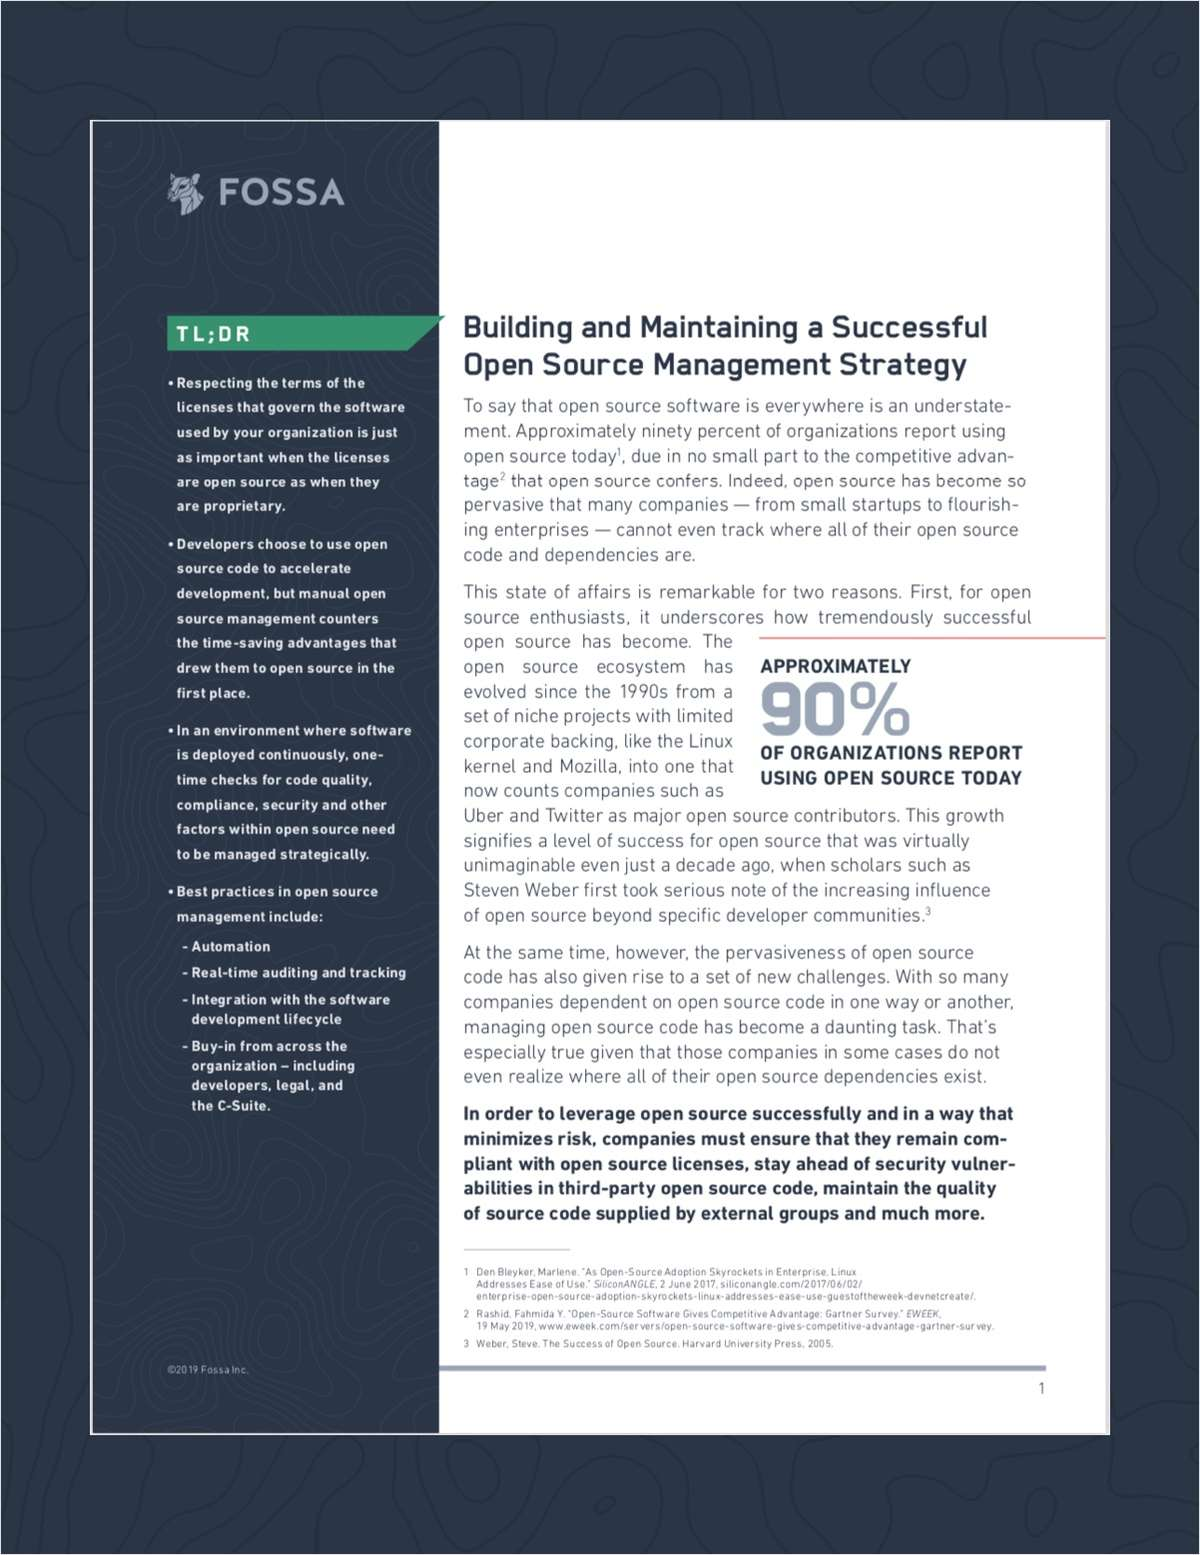 Building a Successful Open Source Management Strategy